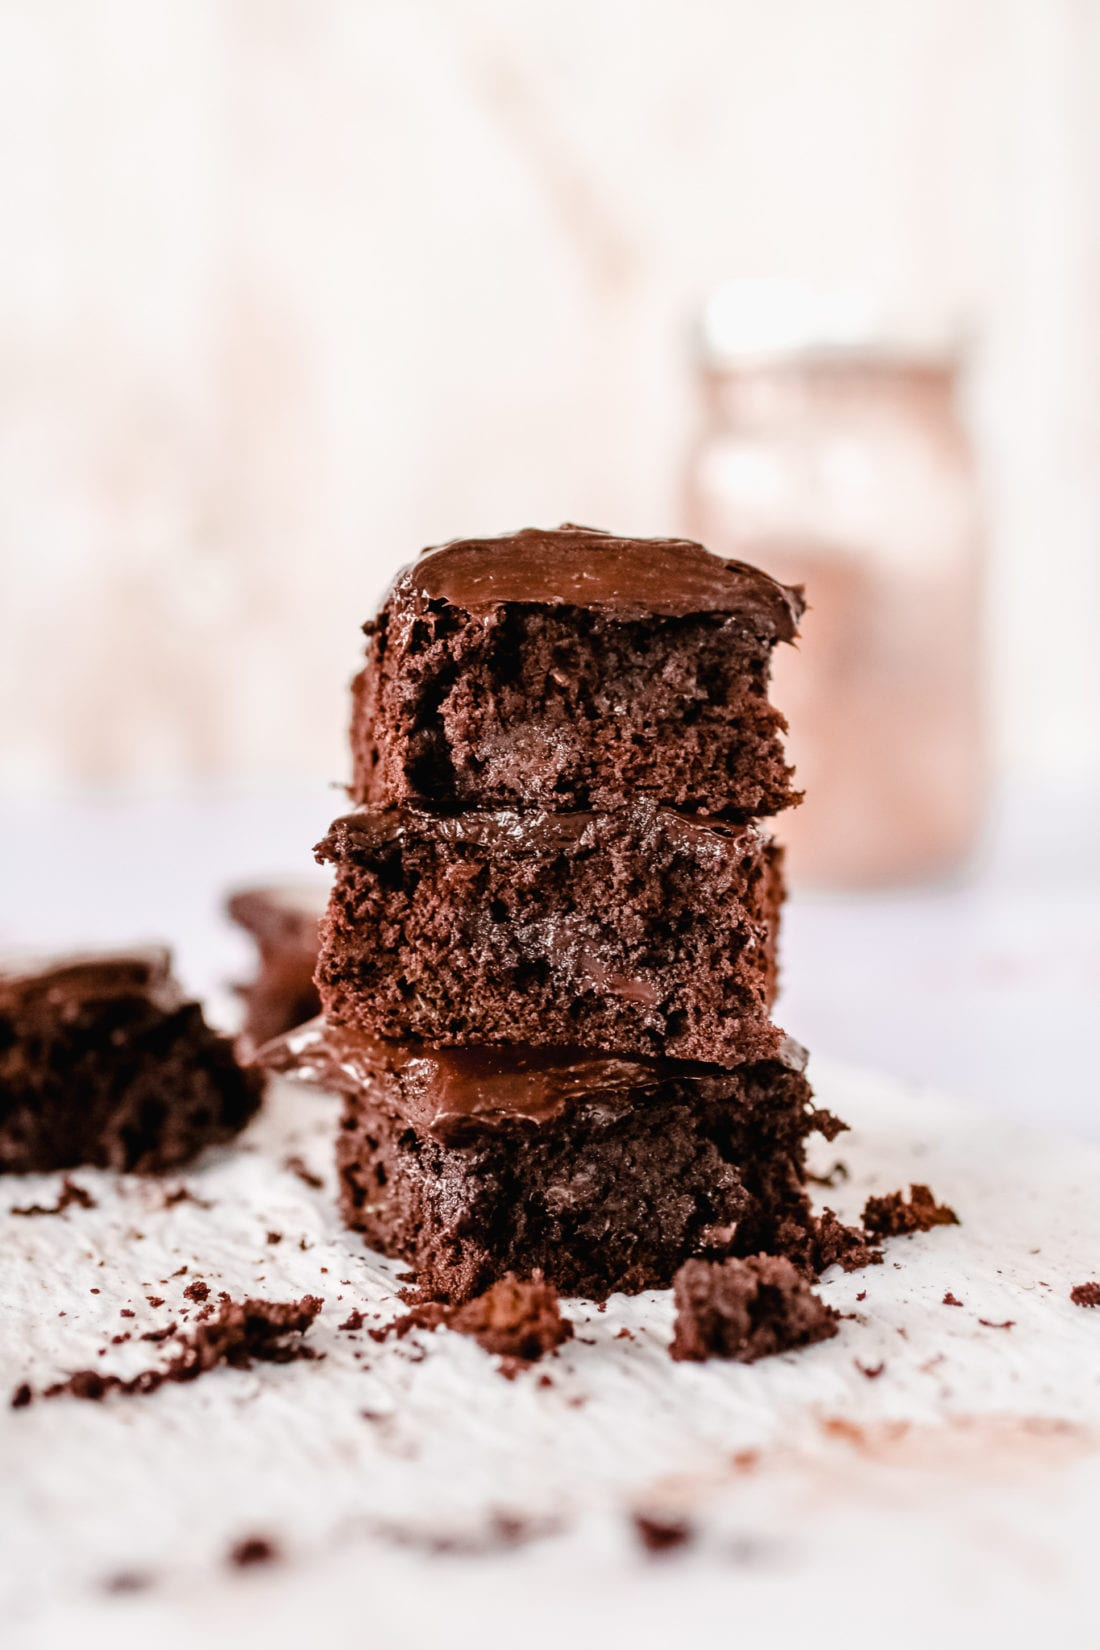 This gluten-free triple chocolate zucchini brownie slathered in chocolate avocado frosting is the ultimate decadent dessert but with a healthy twist.